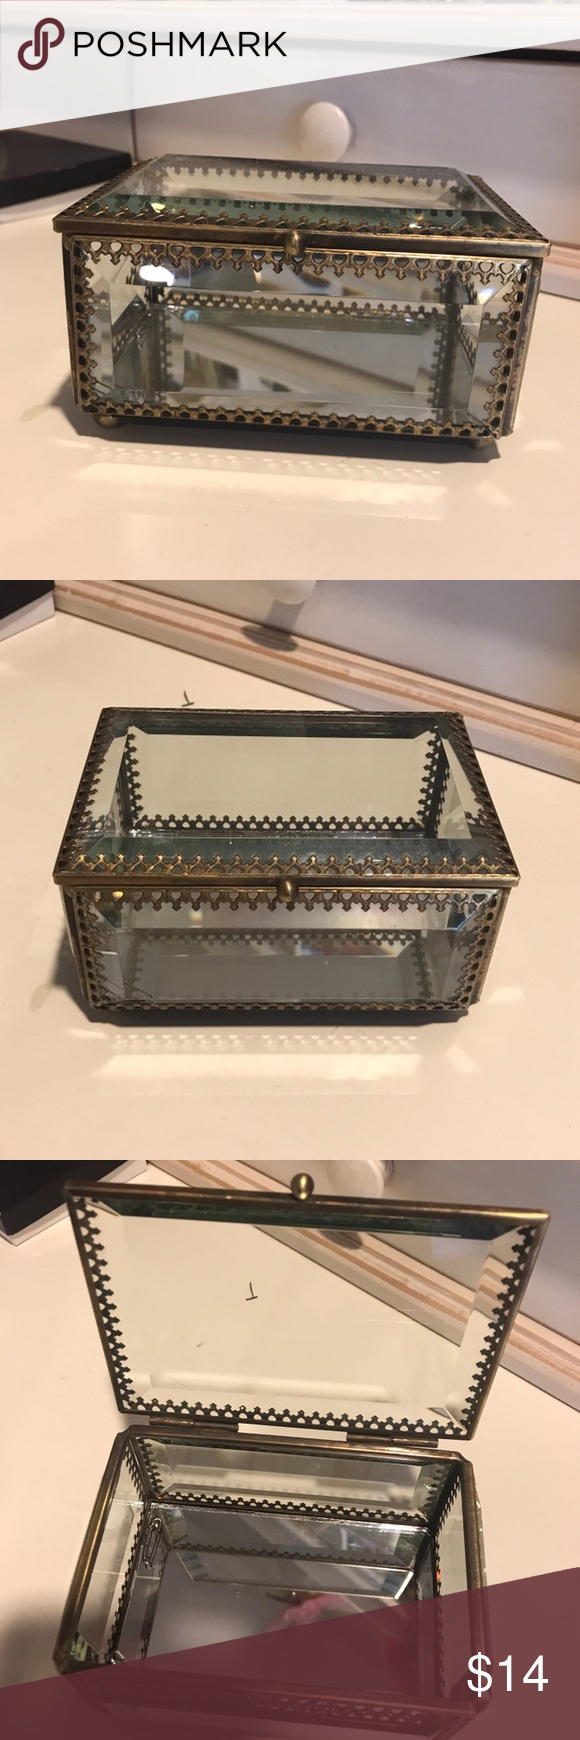 Nicole Miller Jewelry Box Best Nicole Miller Jewelry Box Never Used Jewelry Boxbeautifulperfect Design Decoration